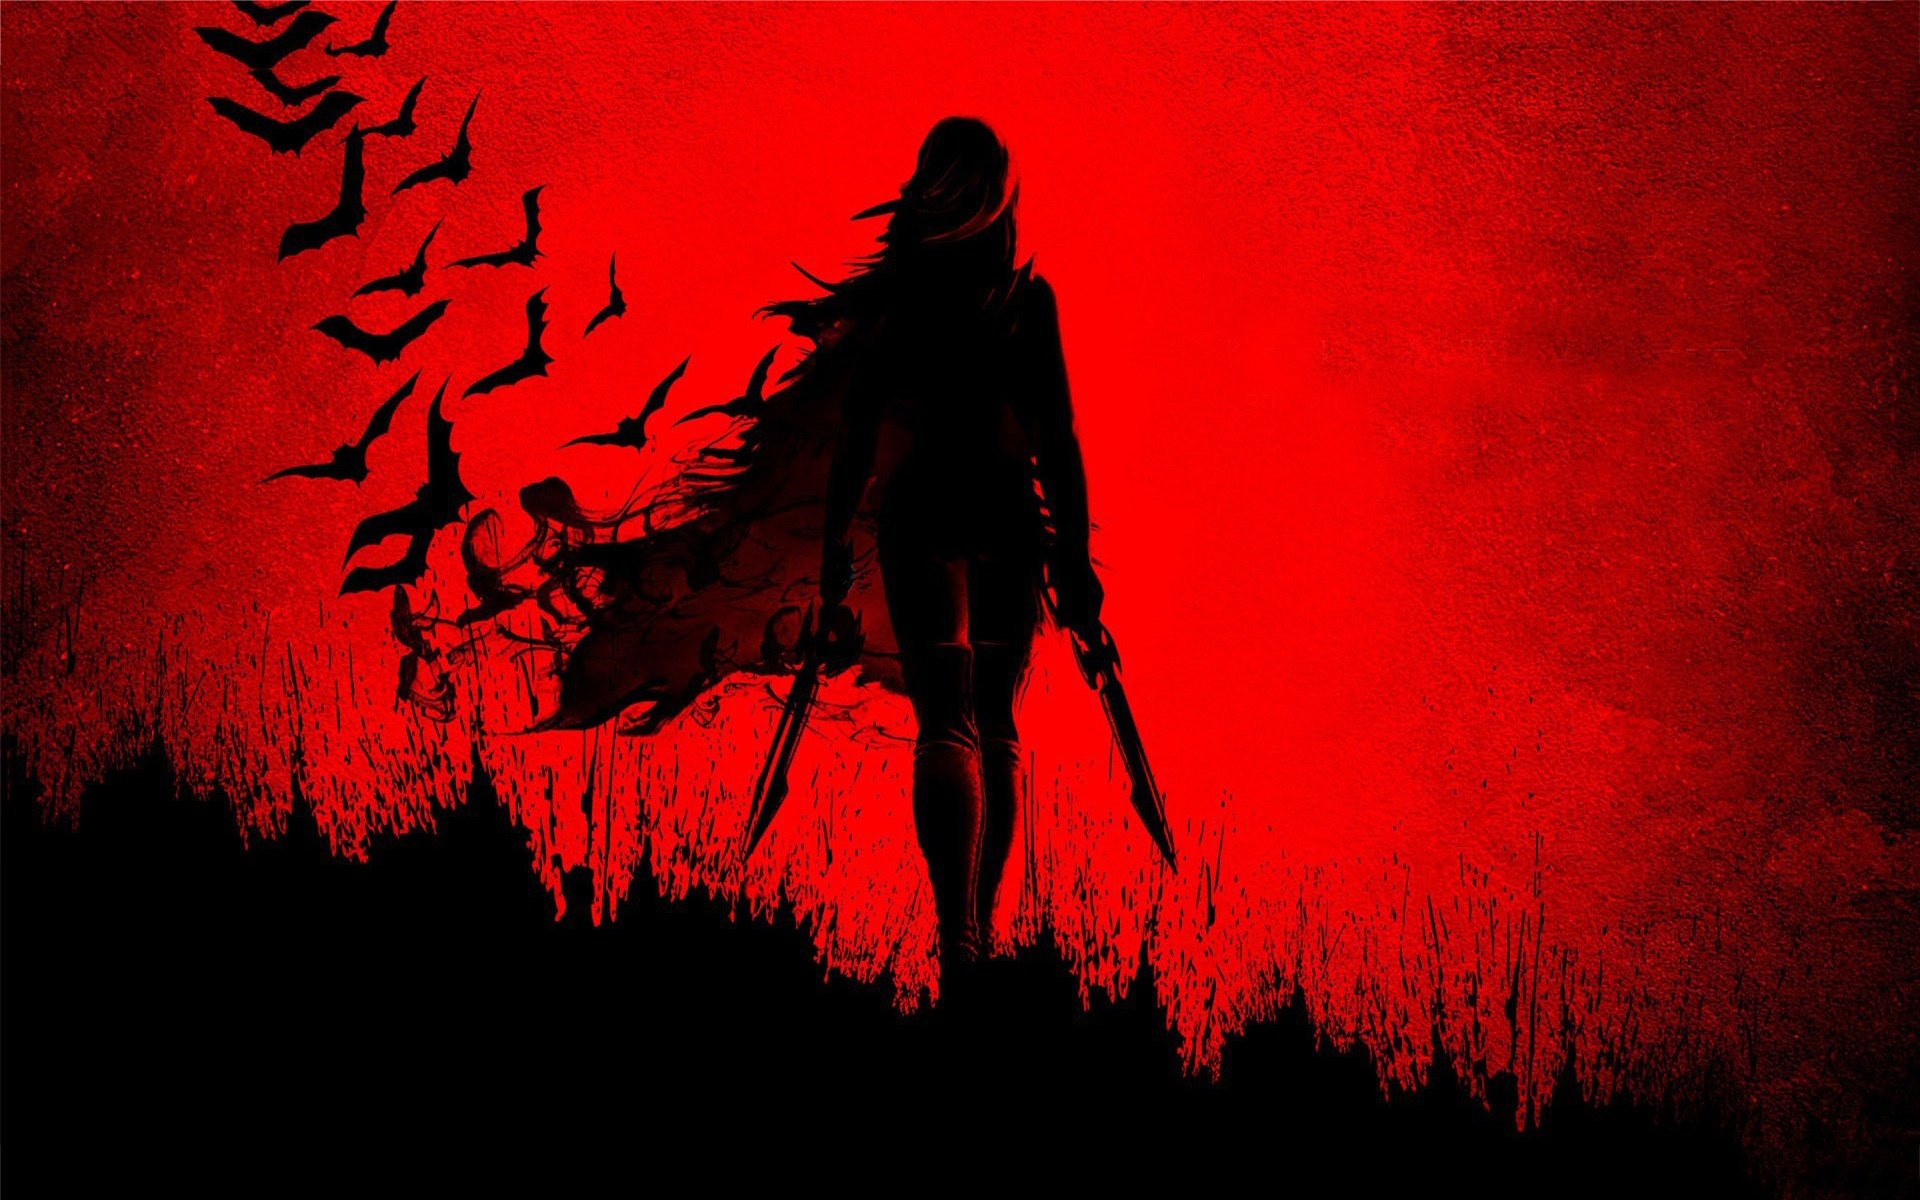 Blade-girl-shadow-wide-red sword anime wallpaper ...